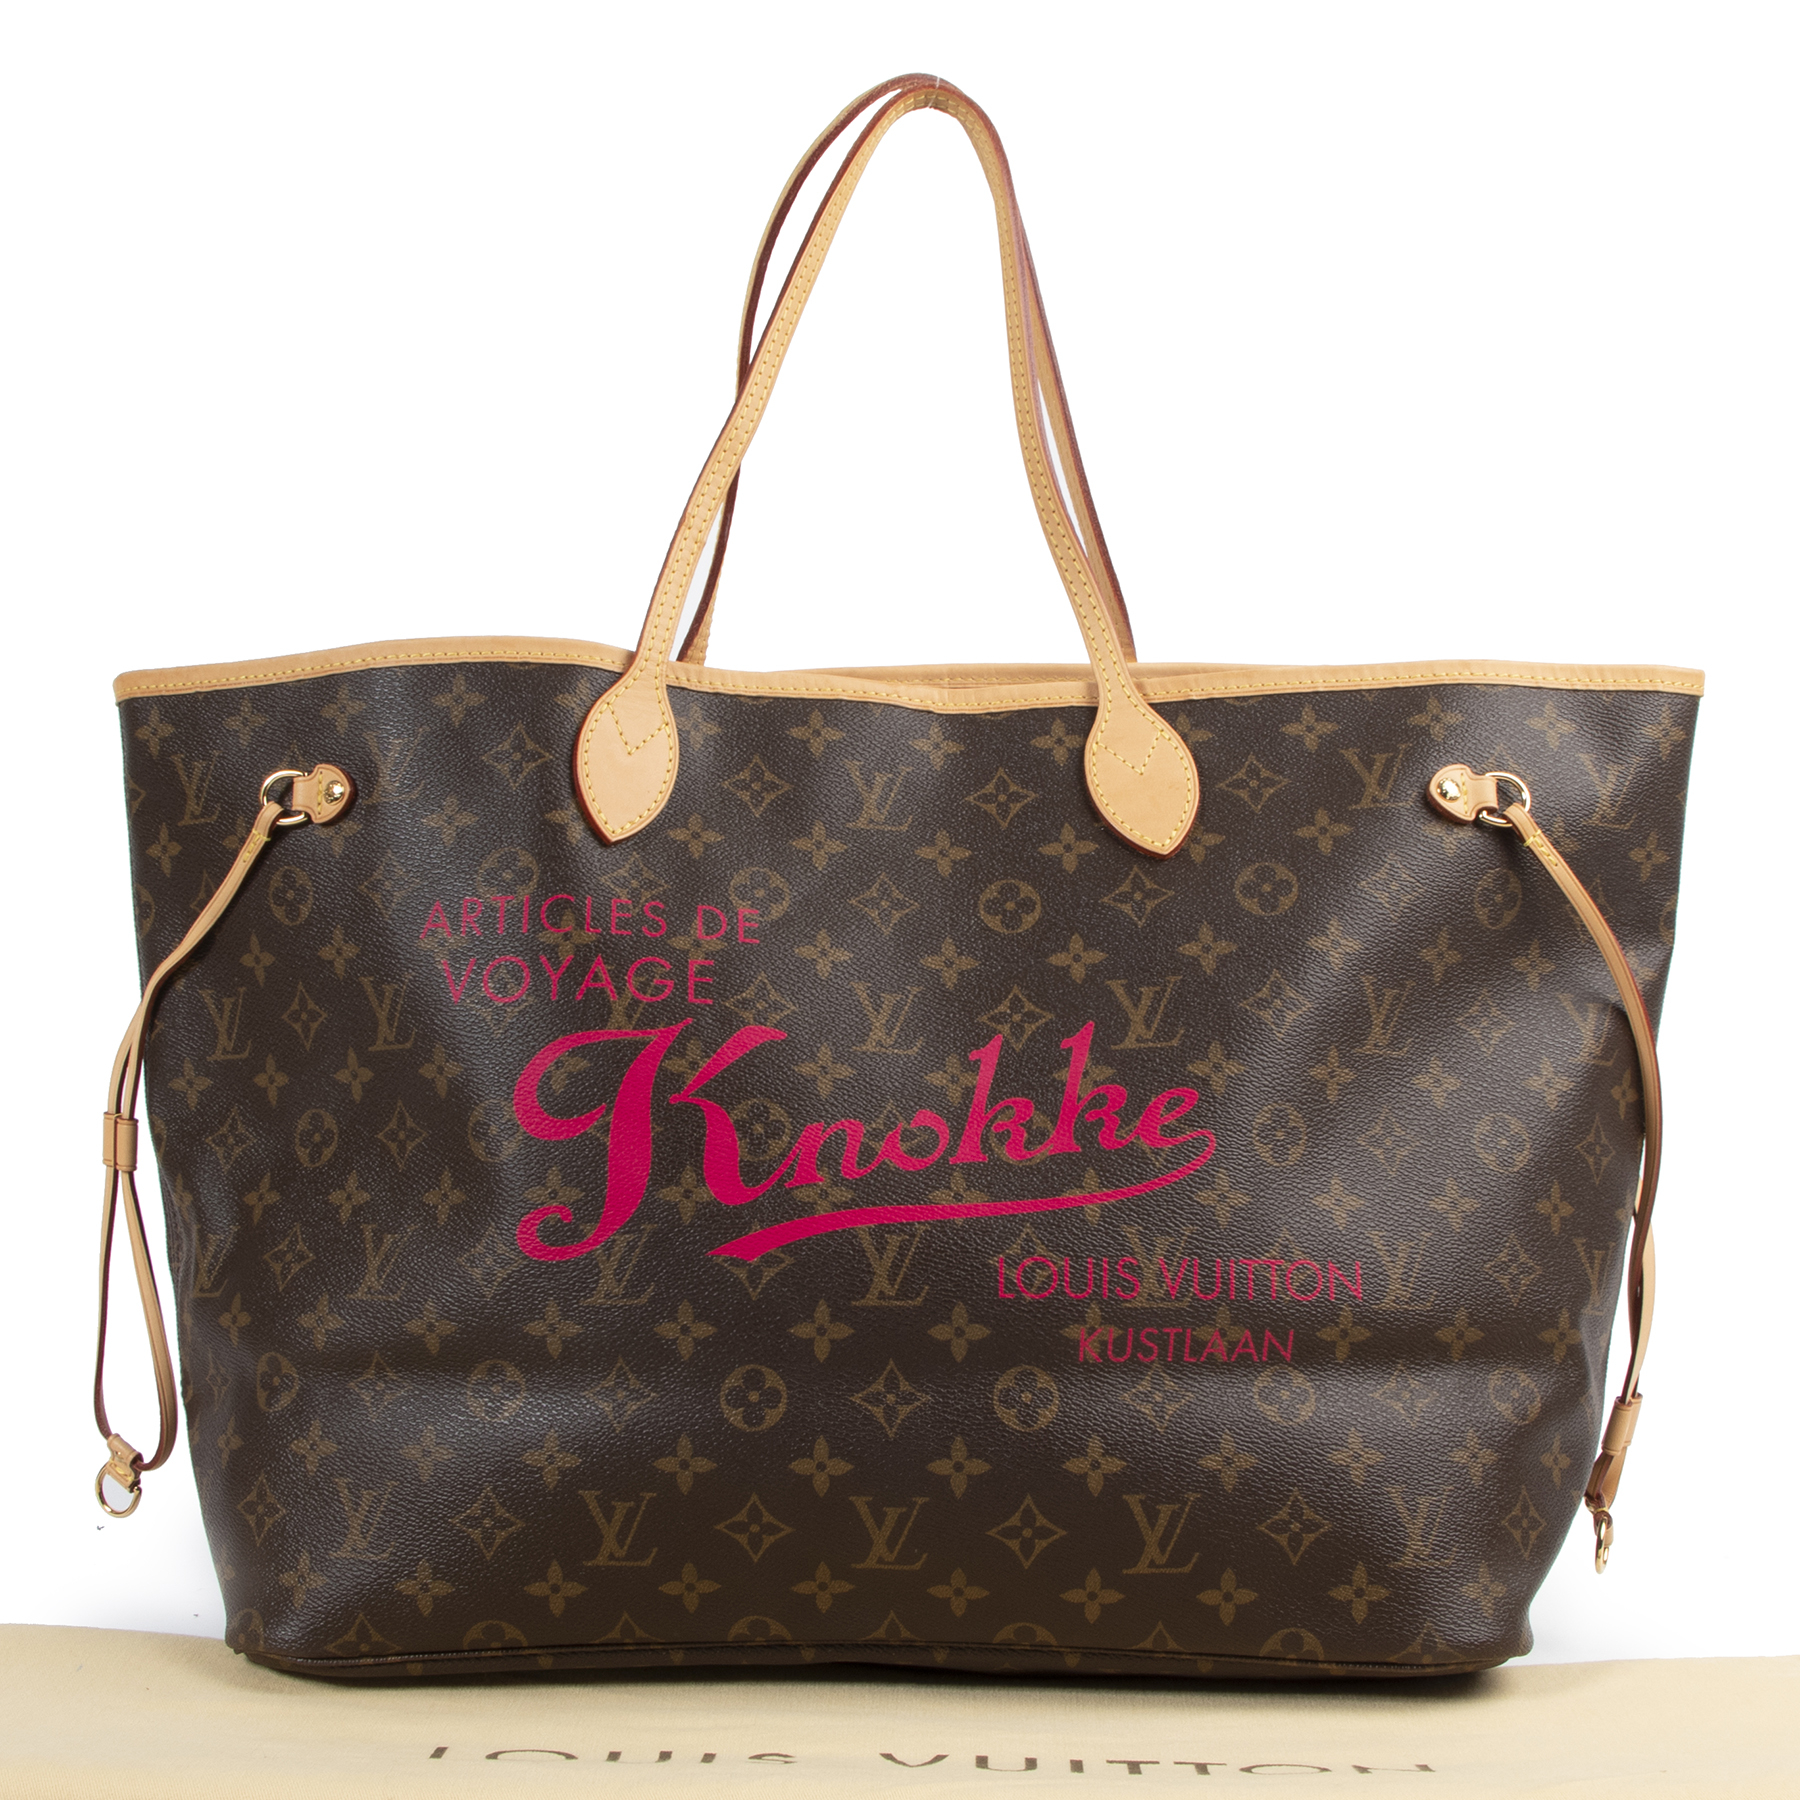 Authentic secondhand Louis Vuitton Limited Edition Monogram 'Knokke' Neverfull Bag designer bags fashion luxury vintage webshop safe secure online shopping